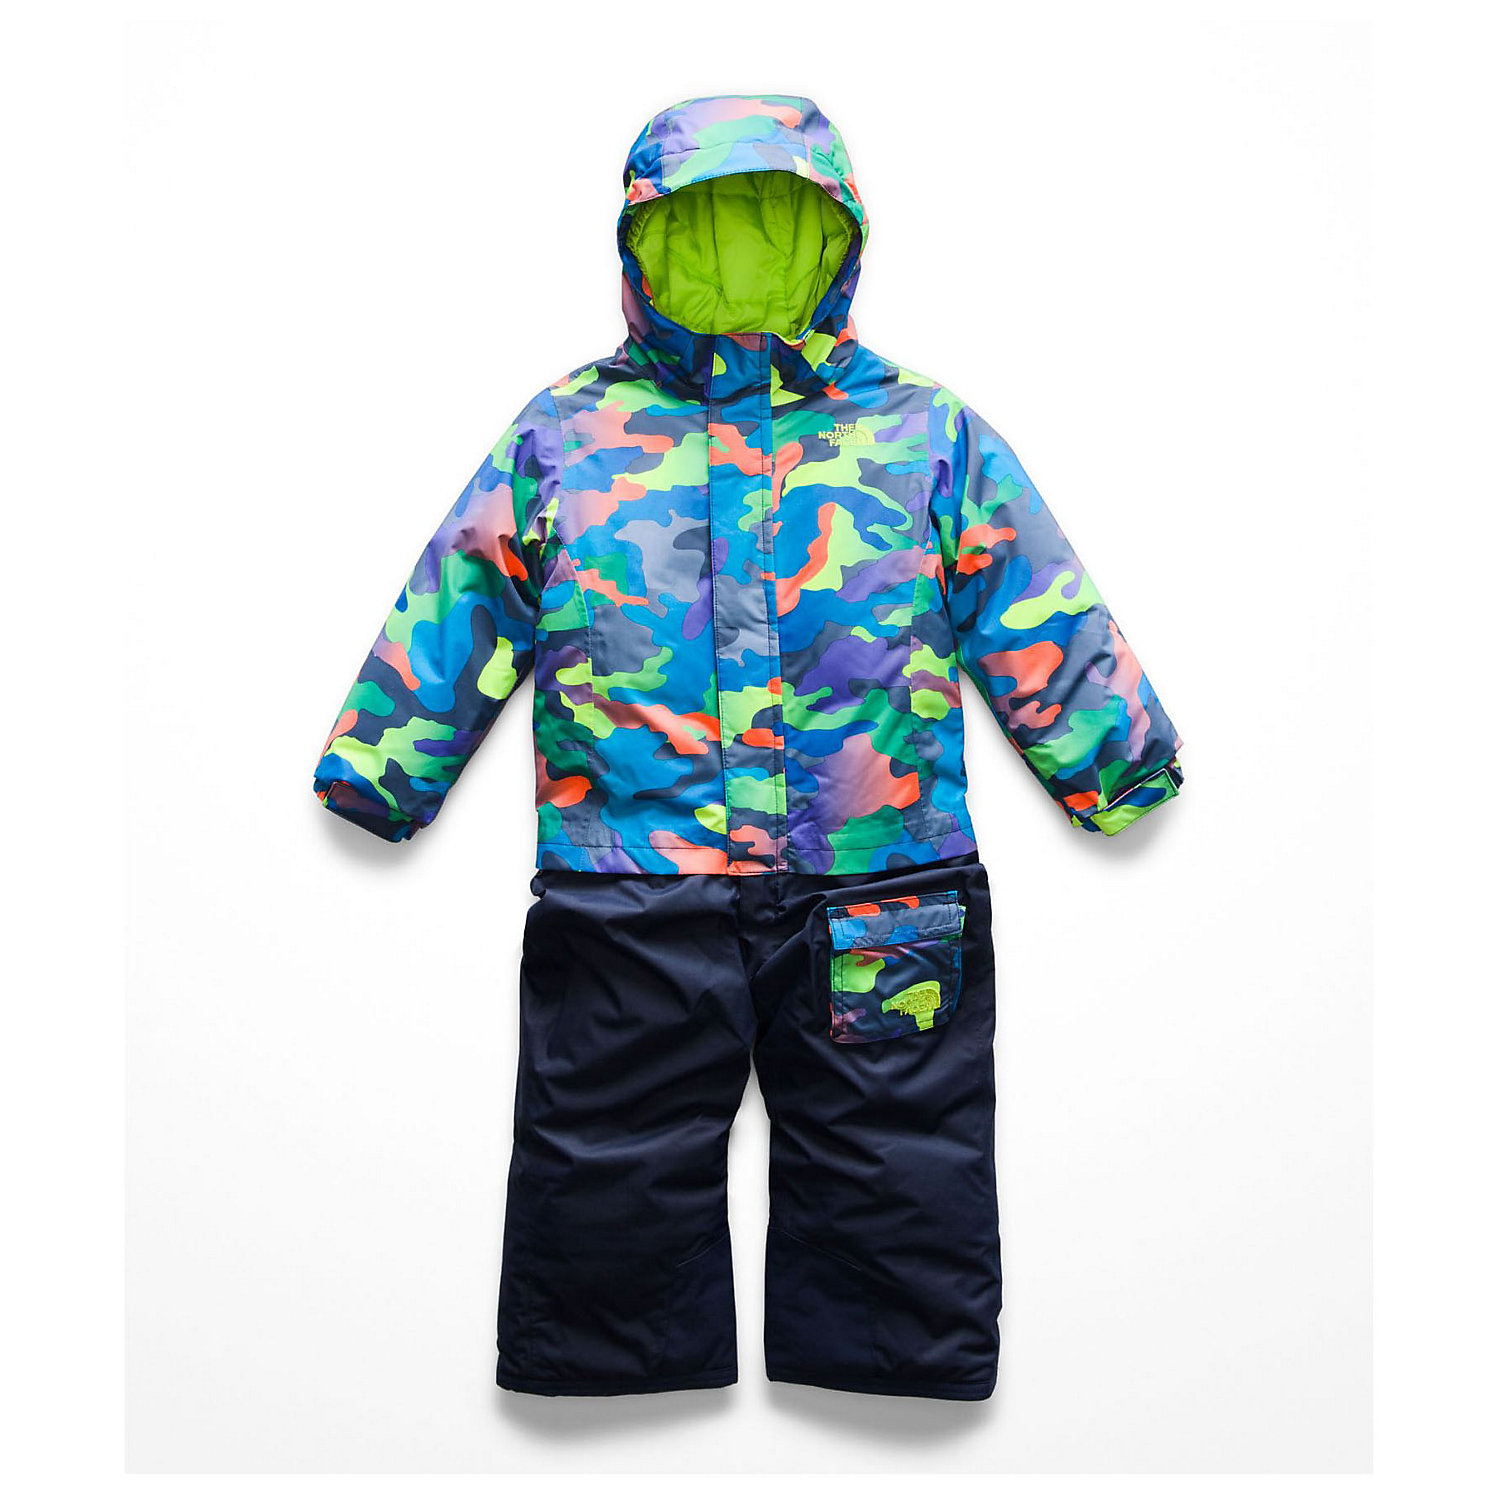 679406c2 The North Face Toddler's Insulated Jumpsuit - Moosejaw